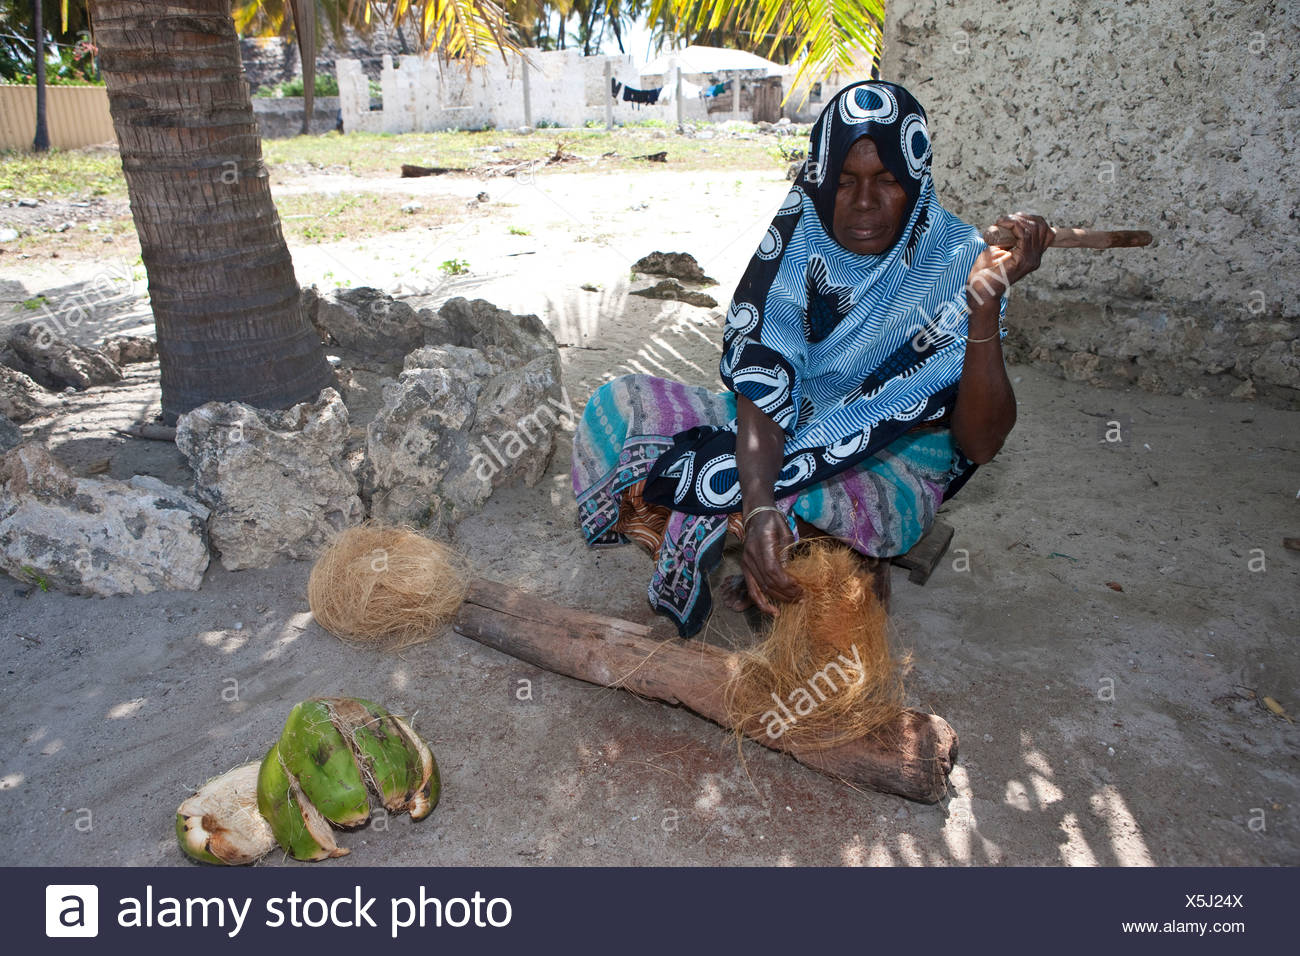 An old woman producing a rope out of a coconut's shell, Jambiani, Zanzibar, Tanzania, Africa - Stock Image